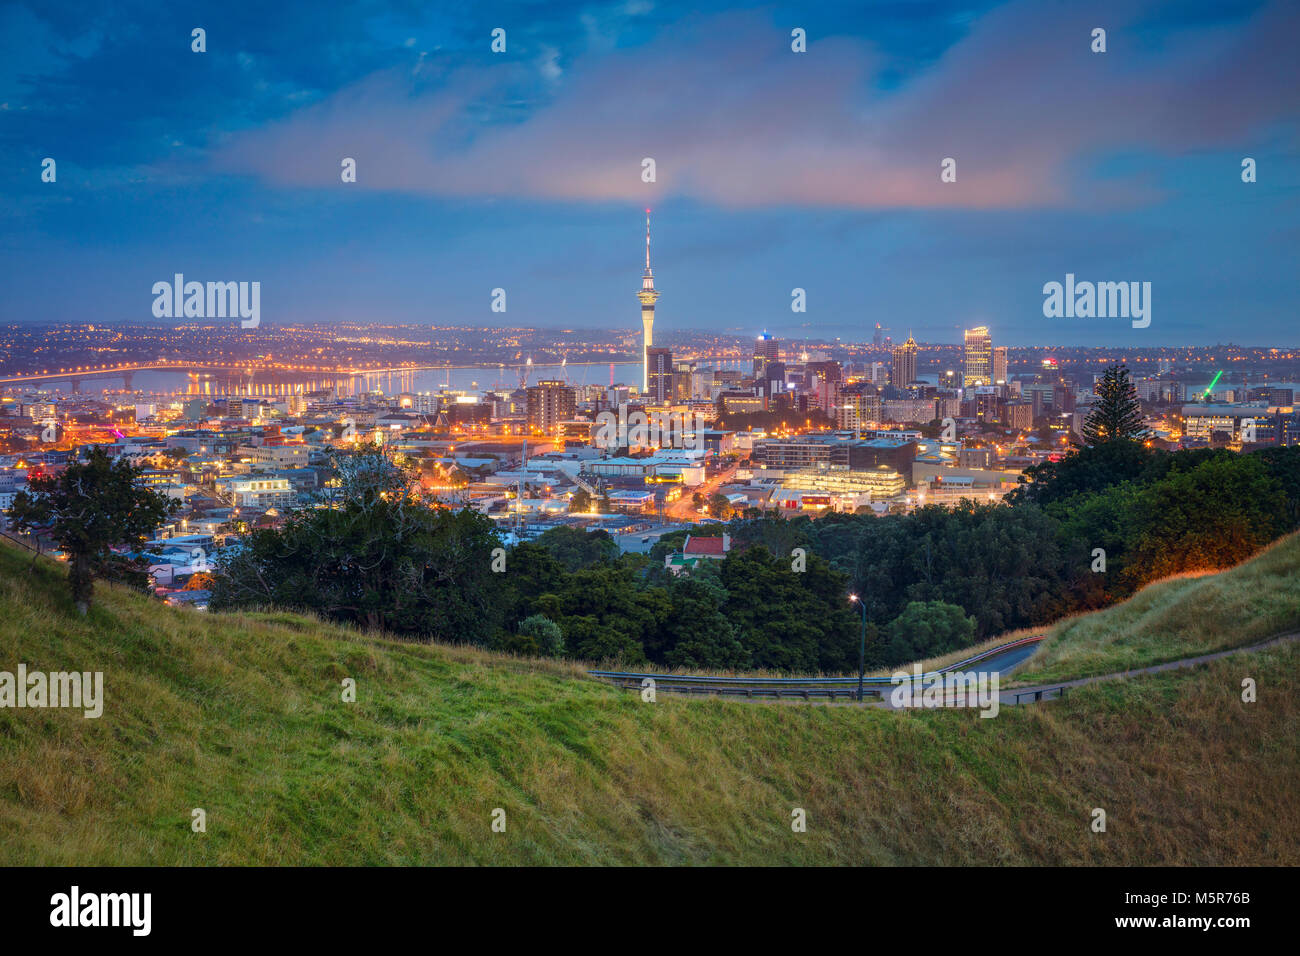 Auckland. Cityscape image of Auckland skyline, New Zealand taken from Mt. Eden at dawn. - Stock Image